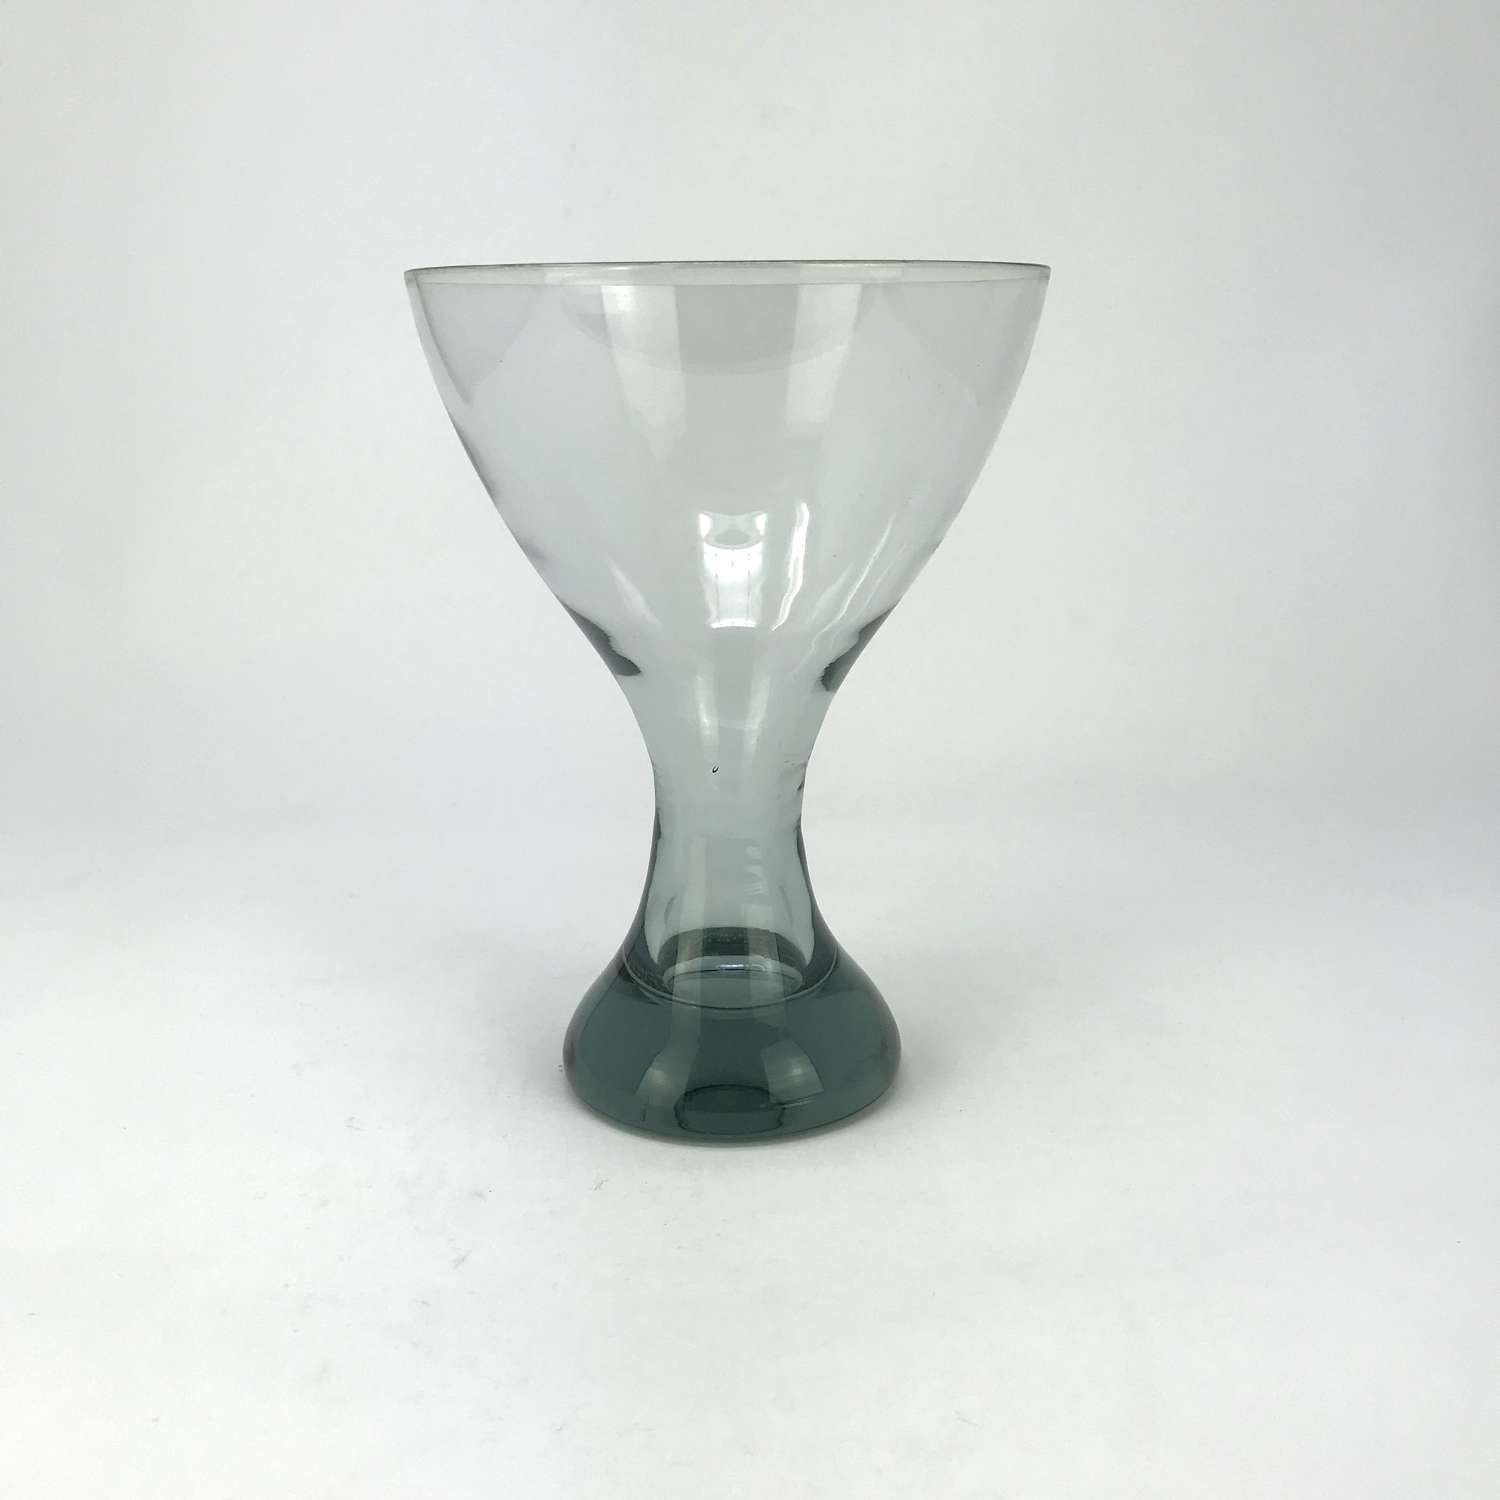 Vicke Lindstrand Smoky Grey Goblet for Kosta, Sweden 1958